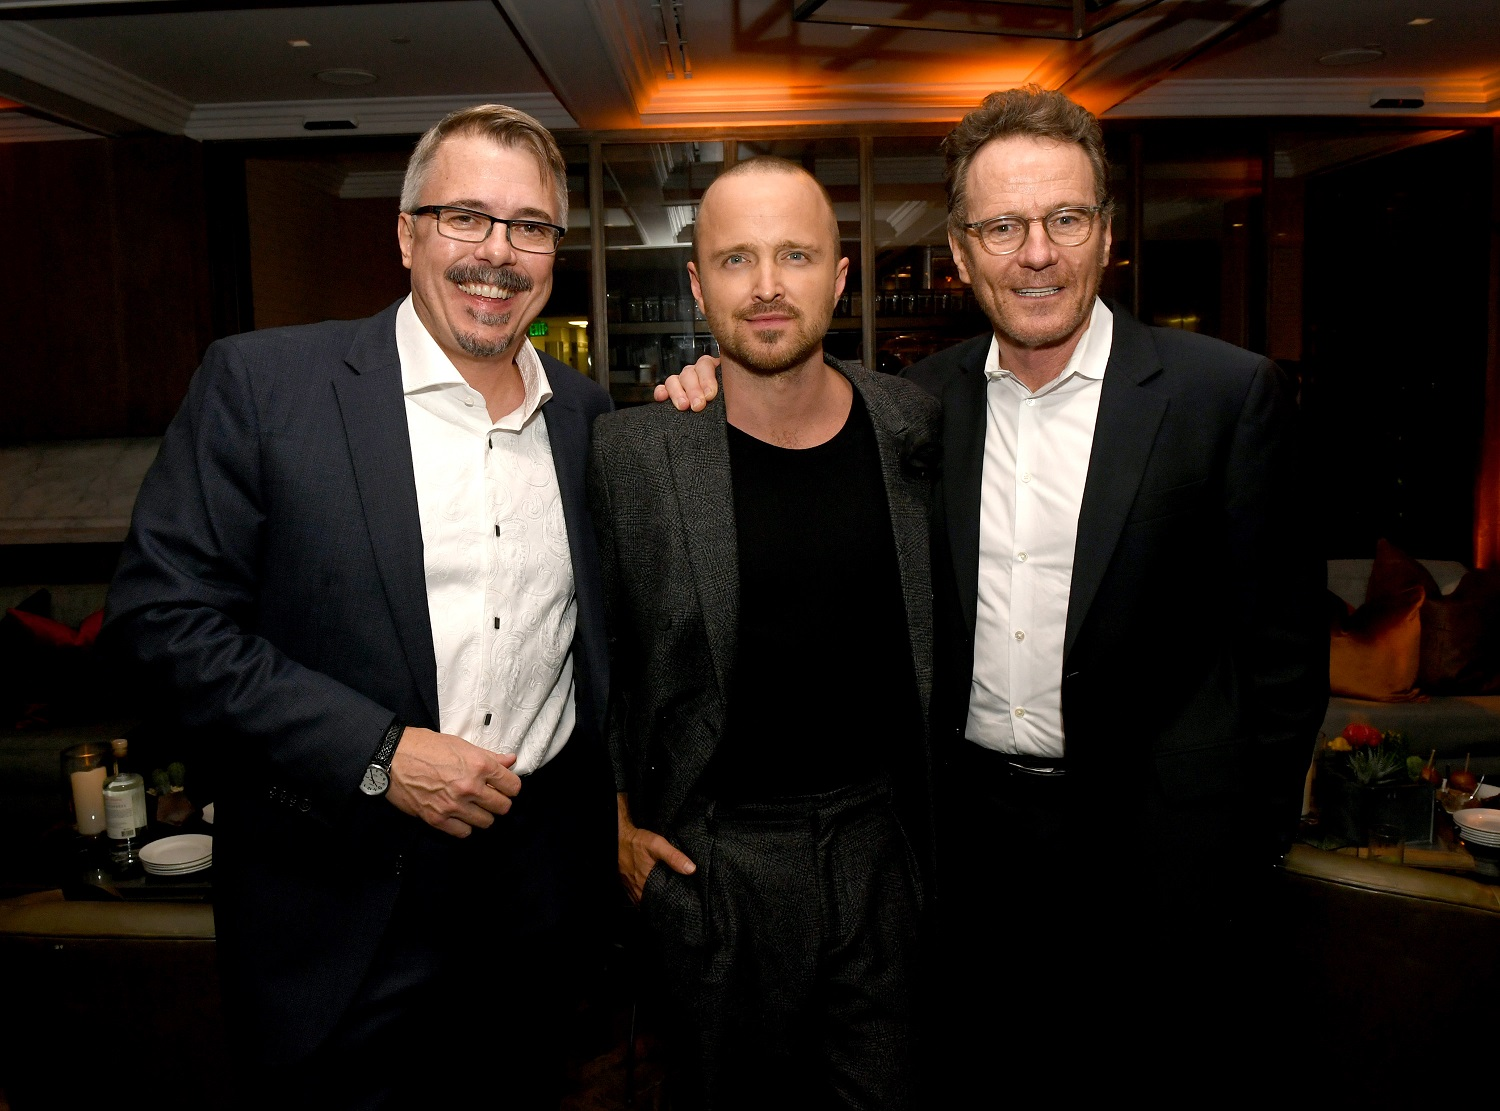 Vince Gilligan, Aaron Paul, and Bryan Cranston pose at the after party for the premiere of El Camino: A Breaking Bad Movie